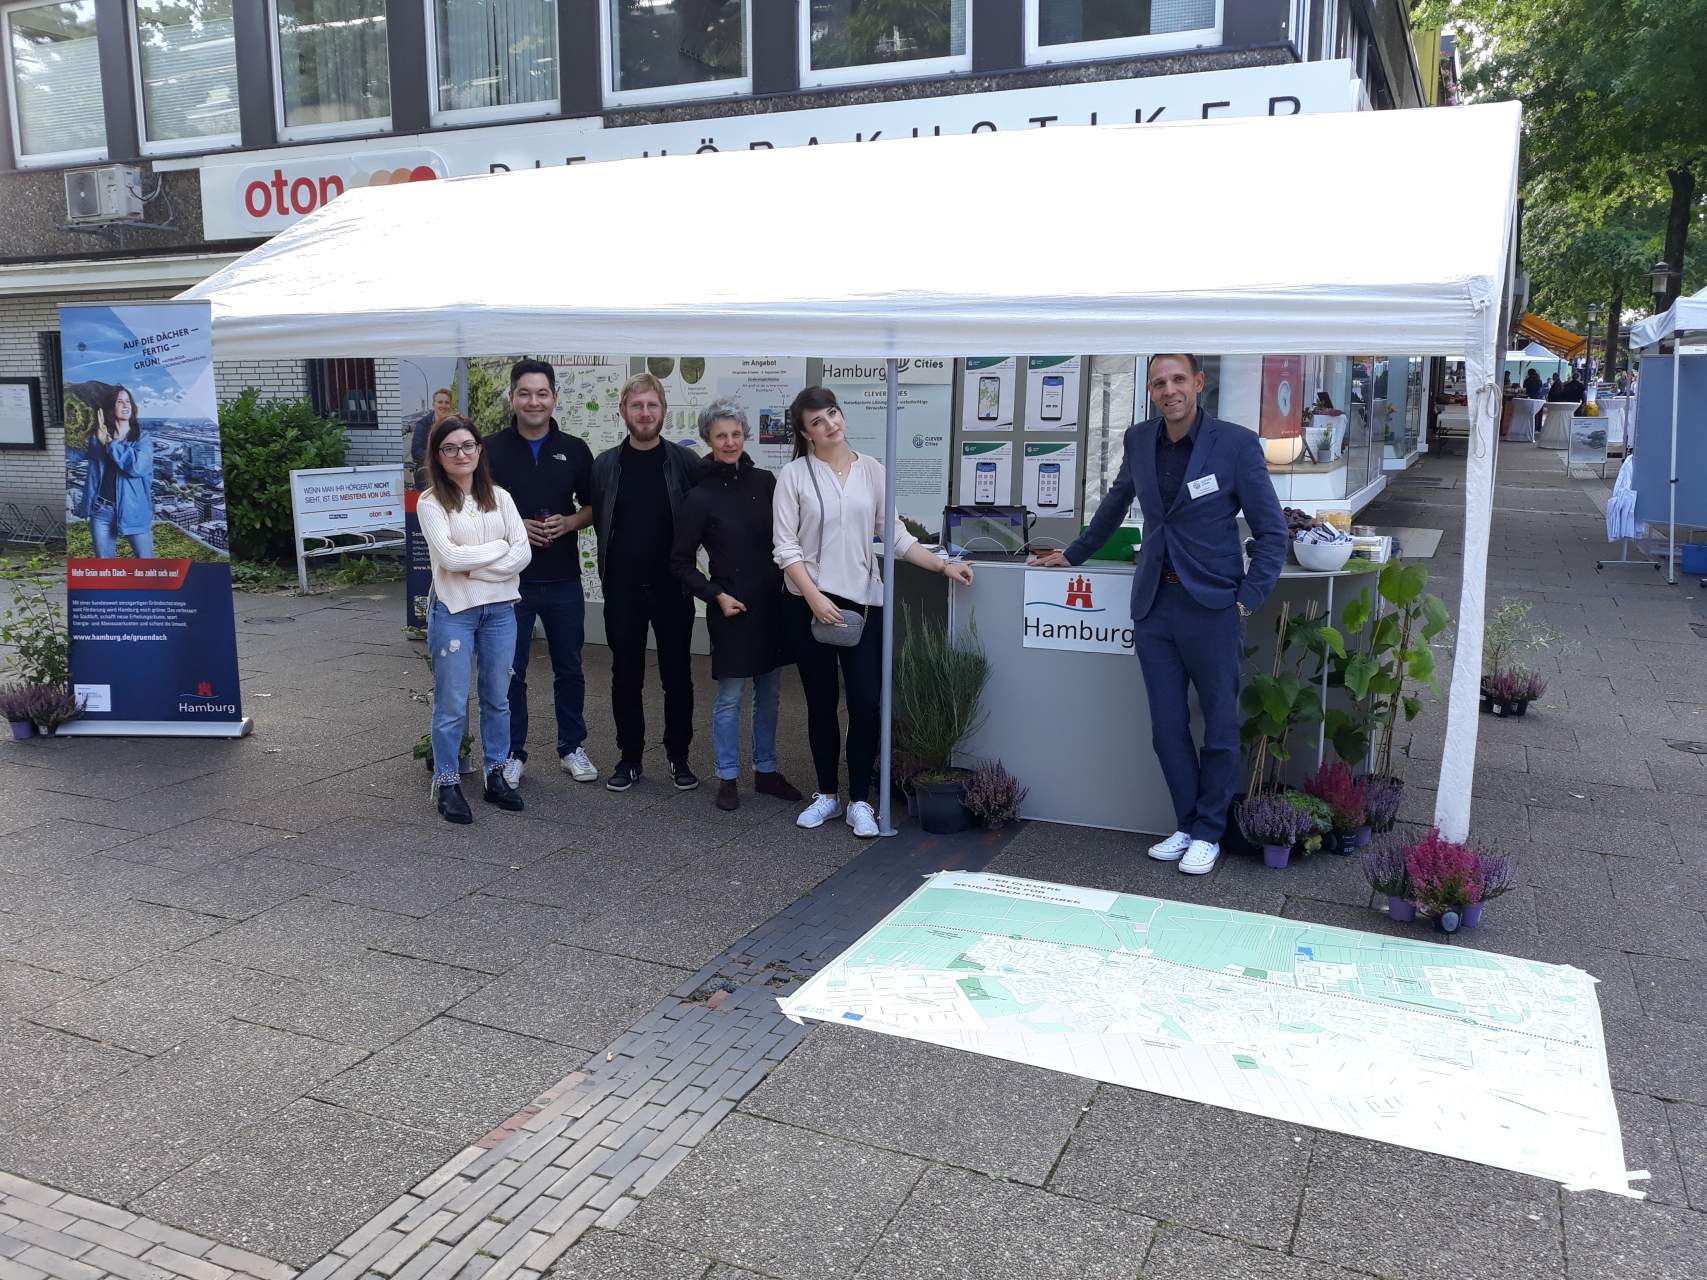 CLEVER Cities Hamburg team takes part in district festival 'Neugraben Erleben'